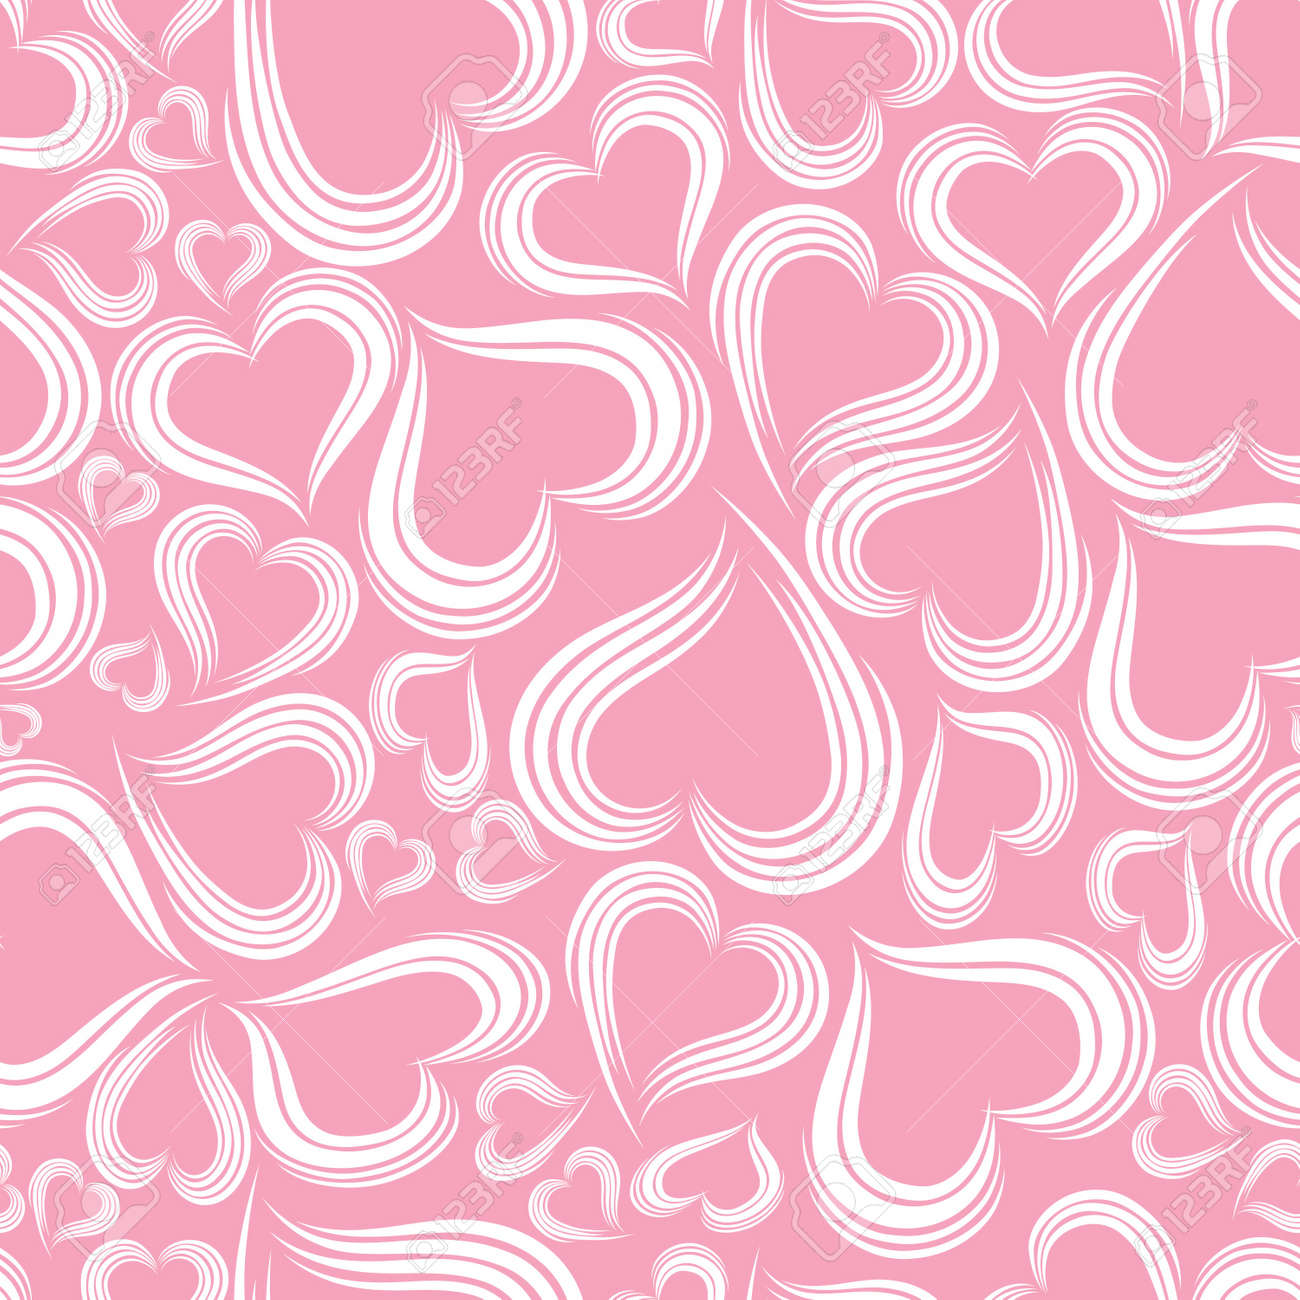 Excellent seamless valentine background. Vector illystration. Stock Vector - 8430403